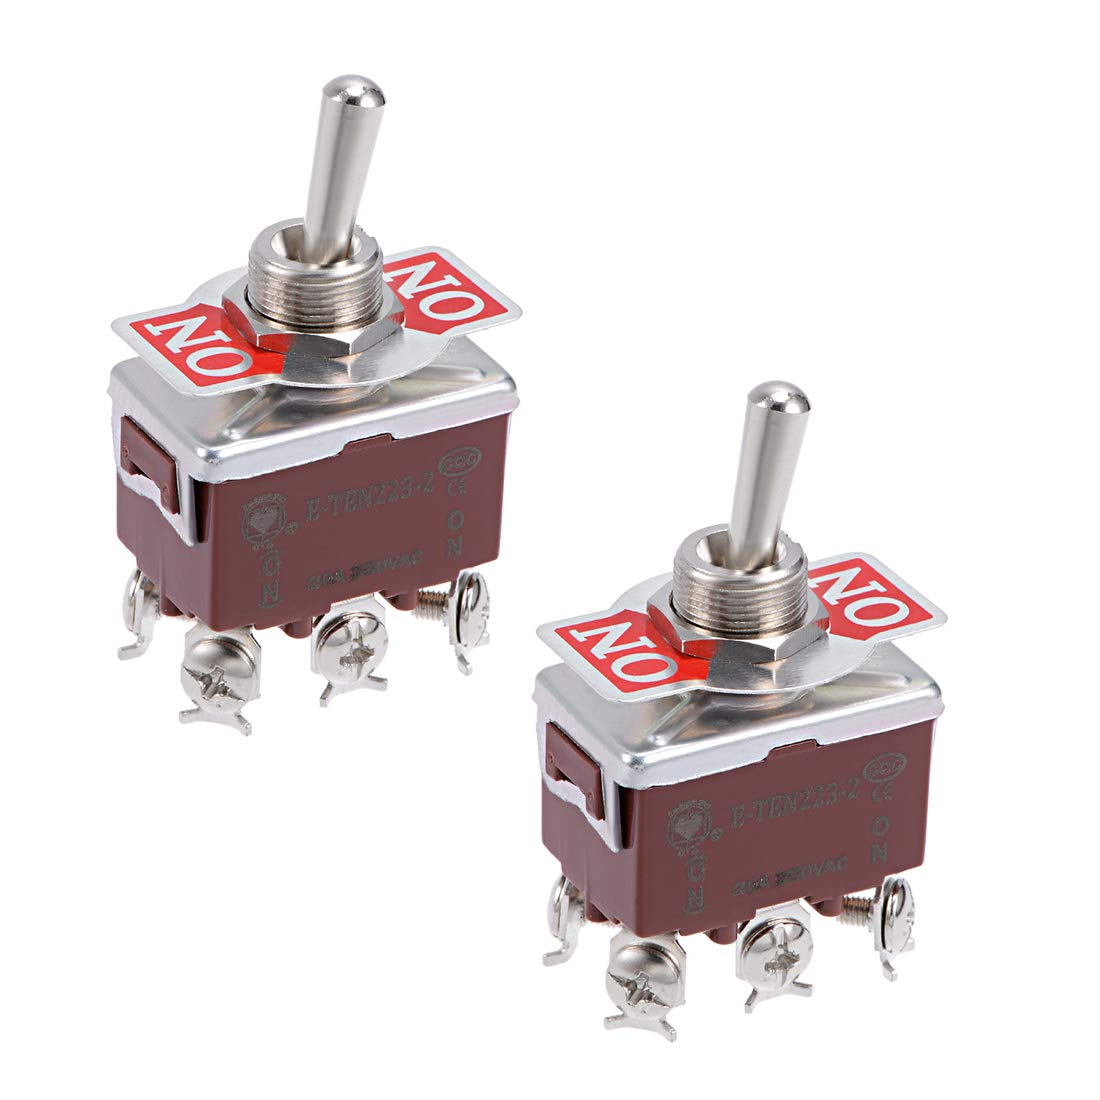 uxcell DPDT Momentary Rocker Toggle Switch Heavy-Duty 20A 250V 6P ON//ON Metal Bat 5pcs